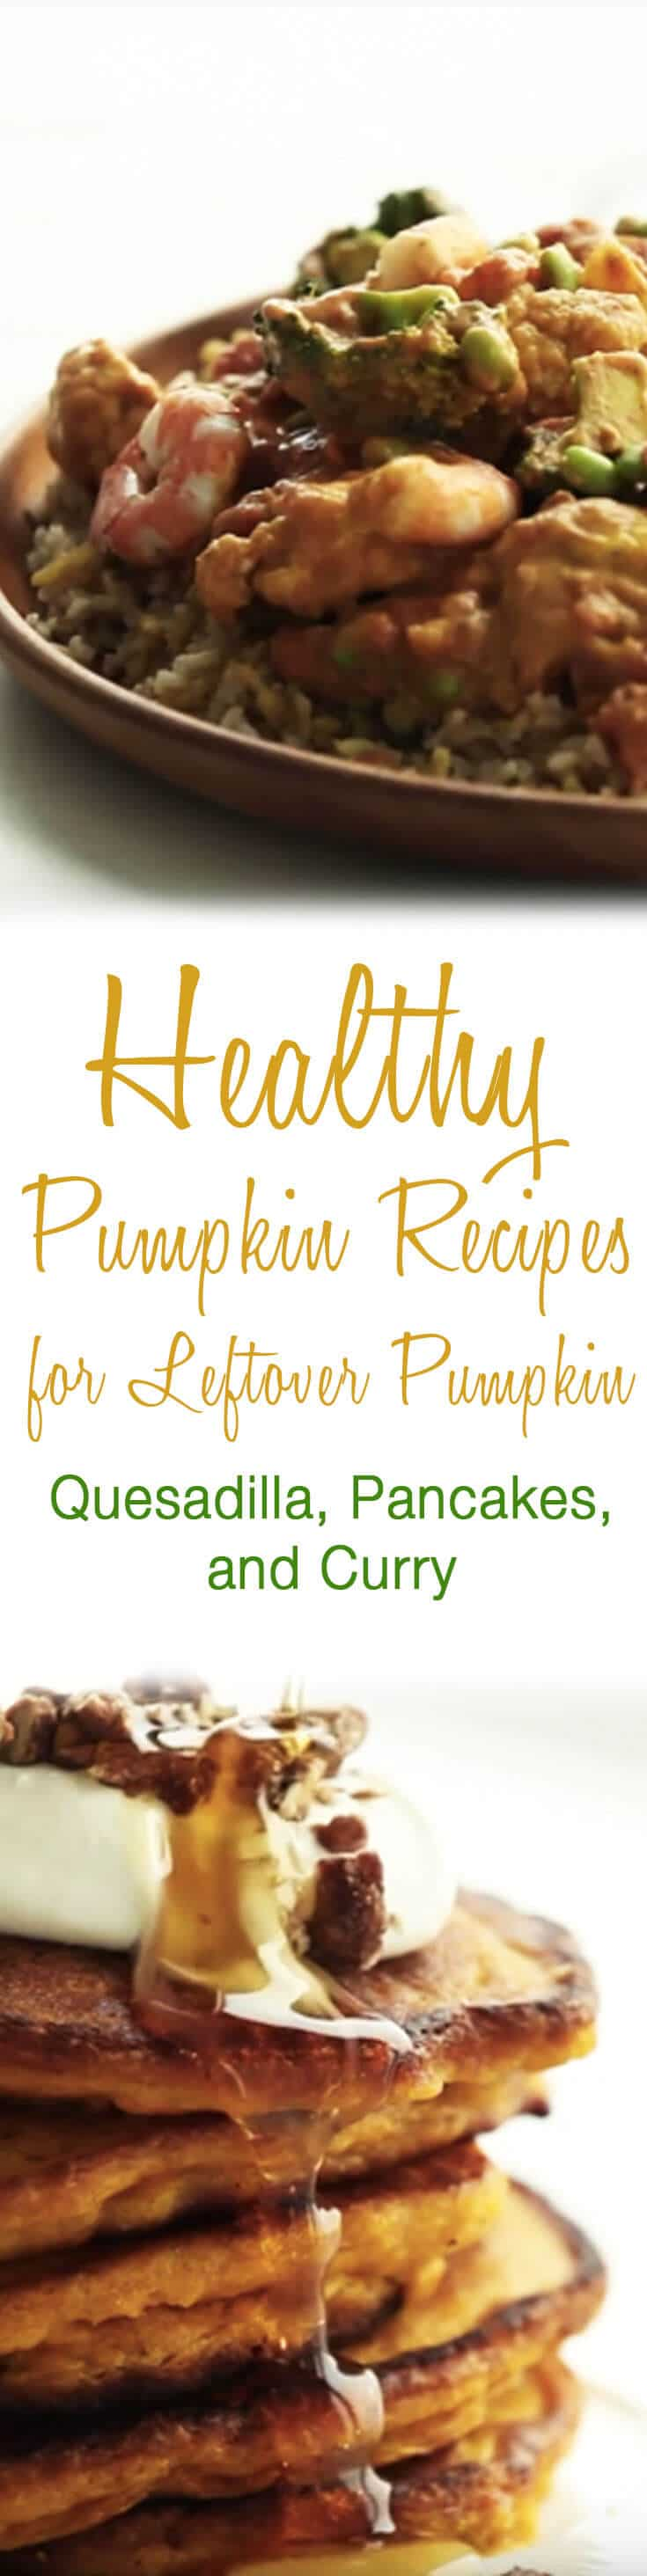 Our favourite healthy pumpkin recipes to help you use your leftover pumpkin from the holidays and Thanksgiving!